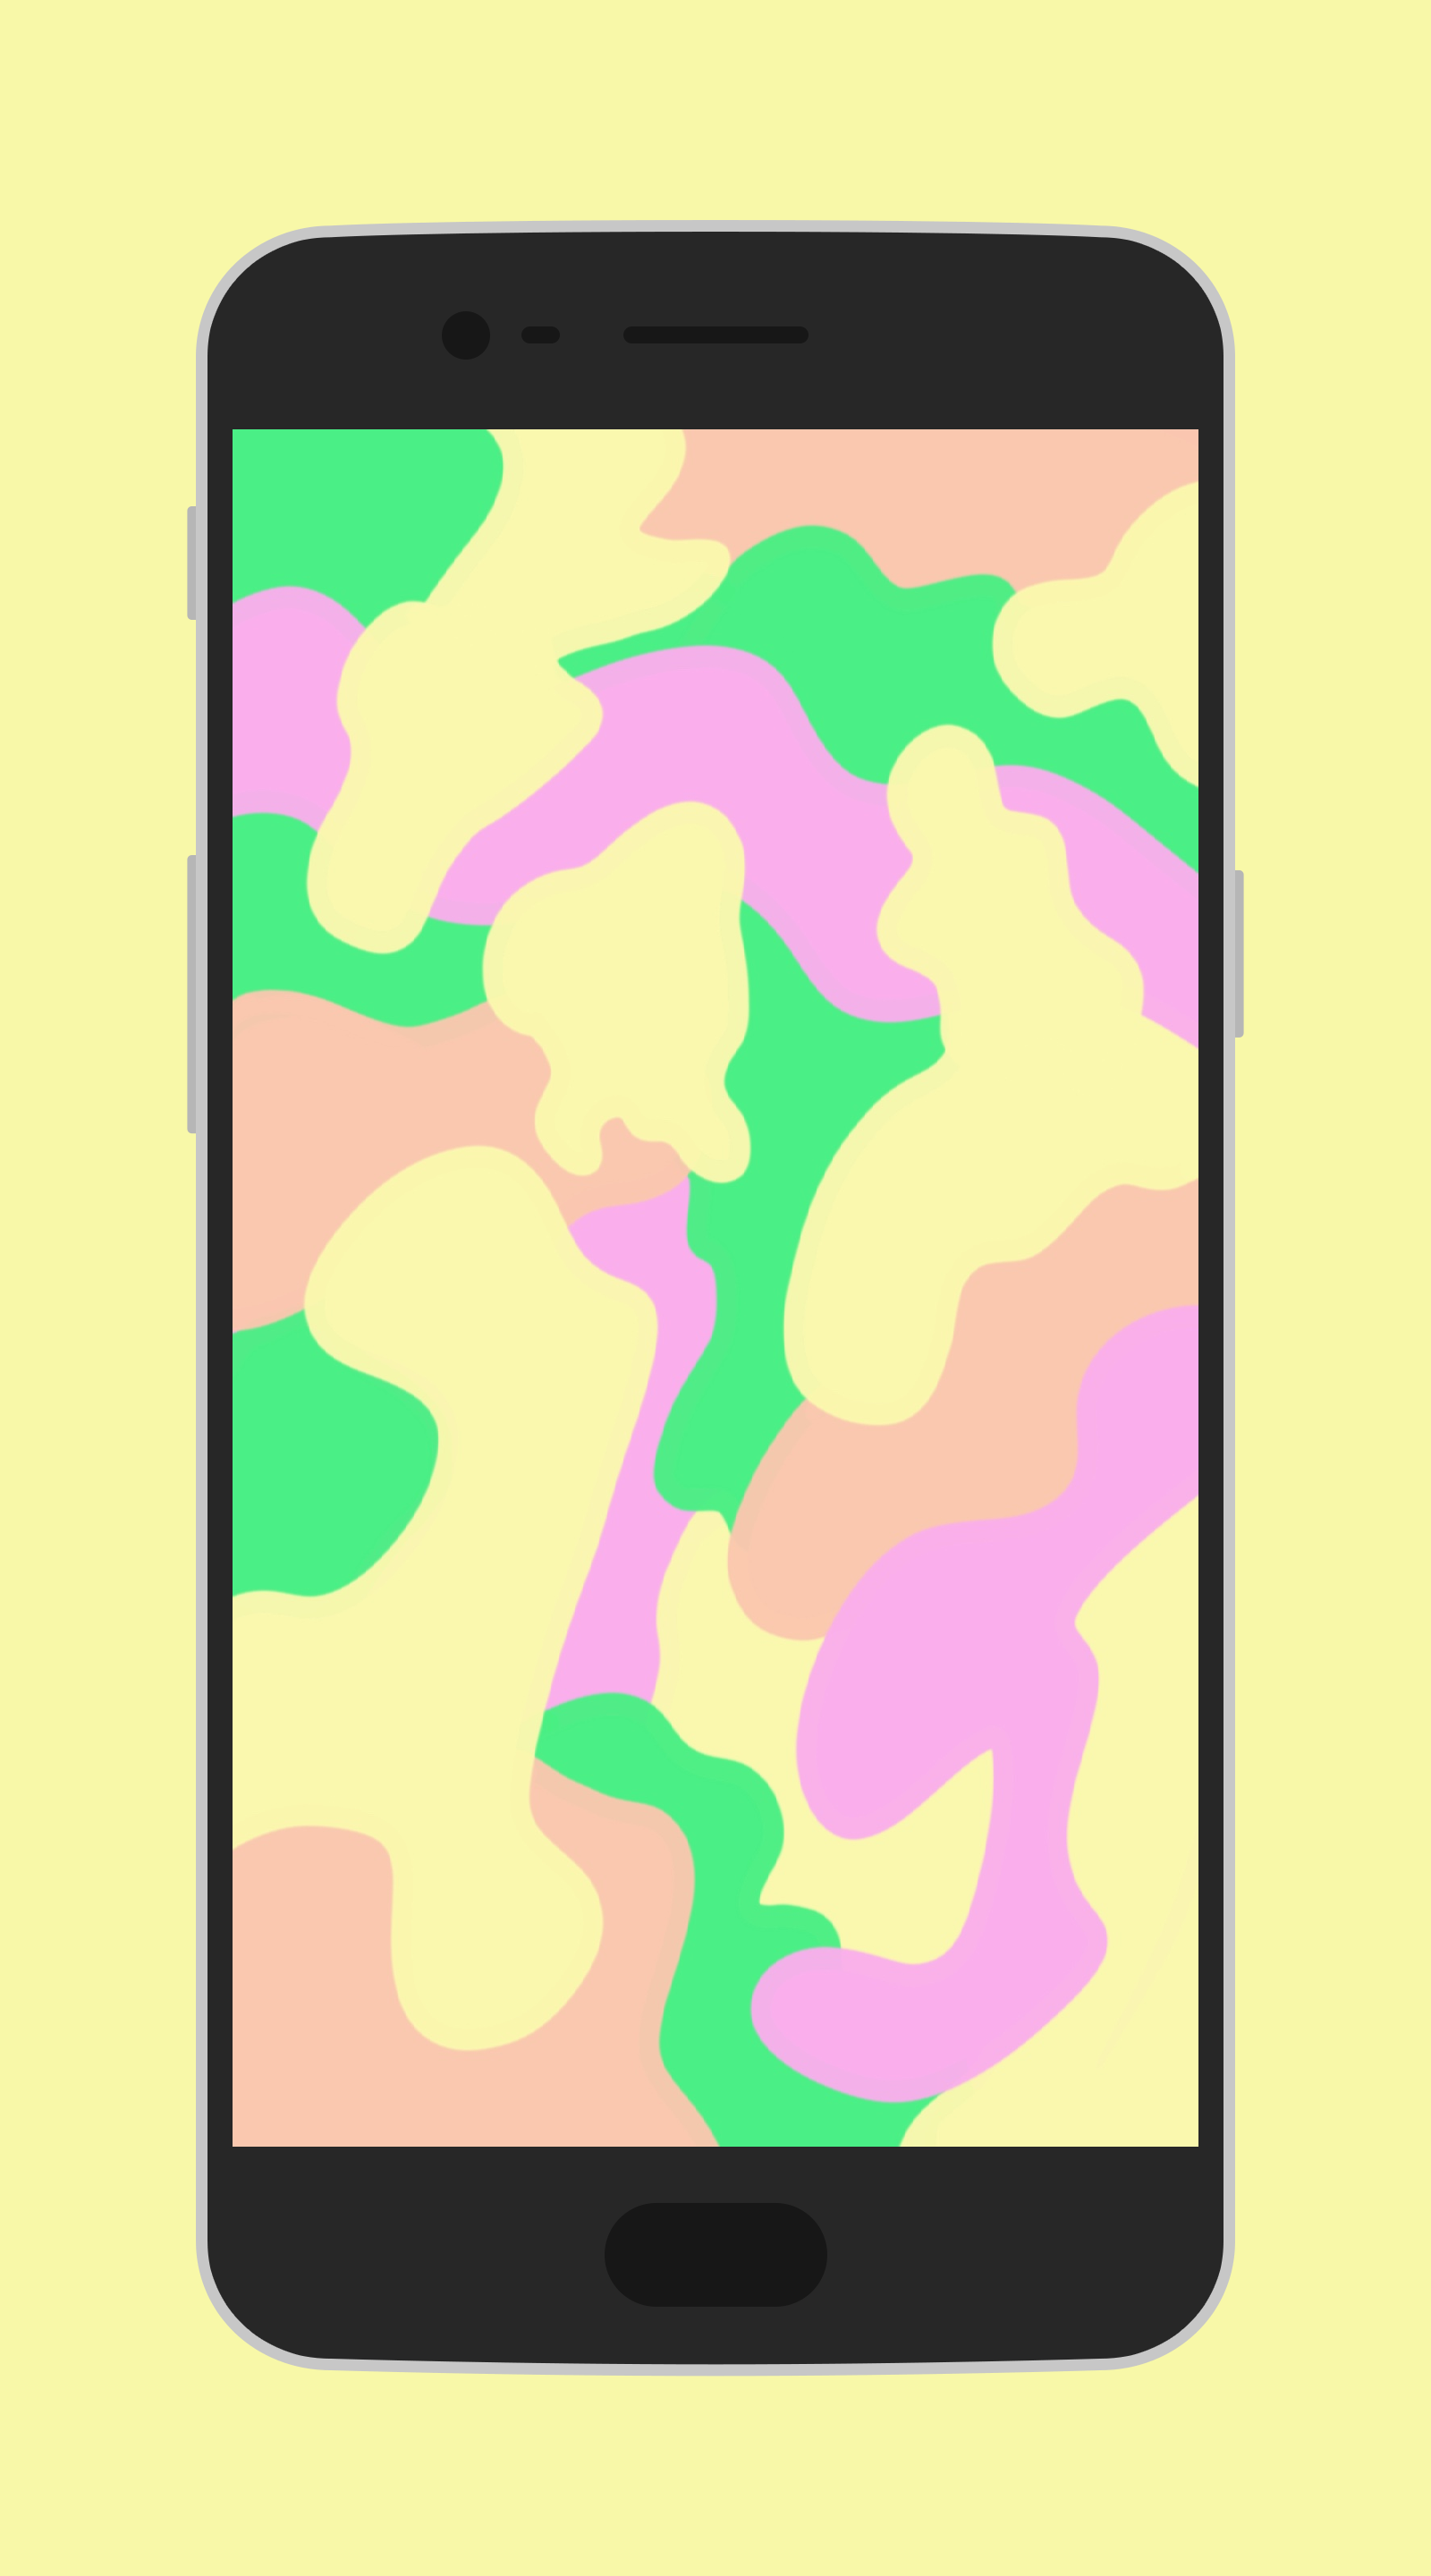 camouflage phone wallpaper - get it at www lazertrashprinter com